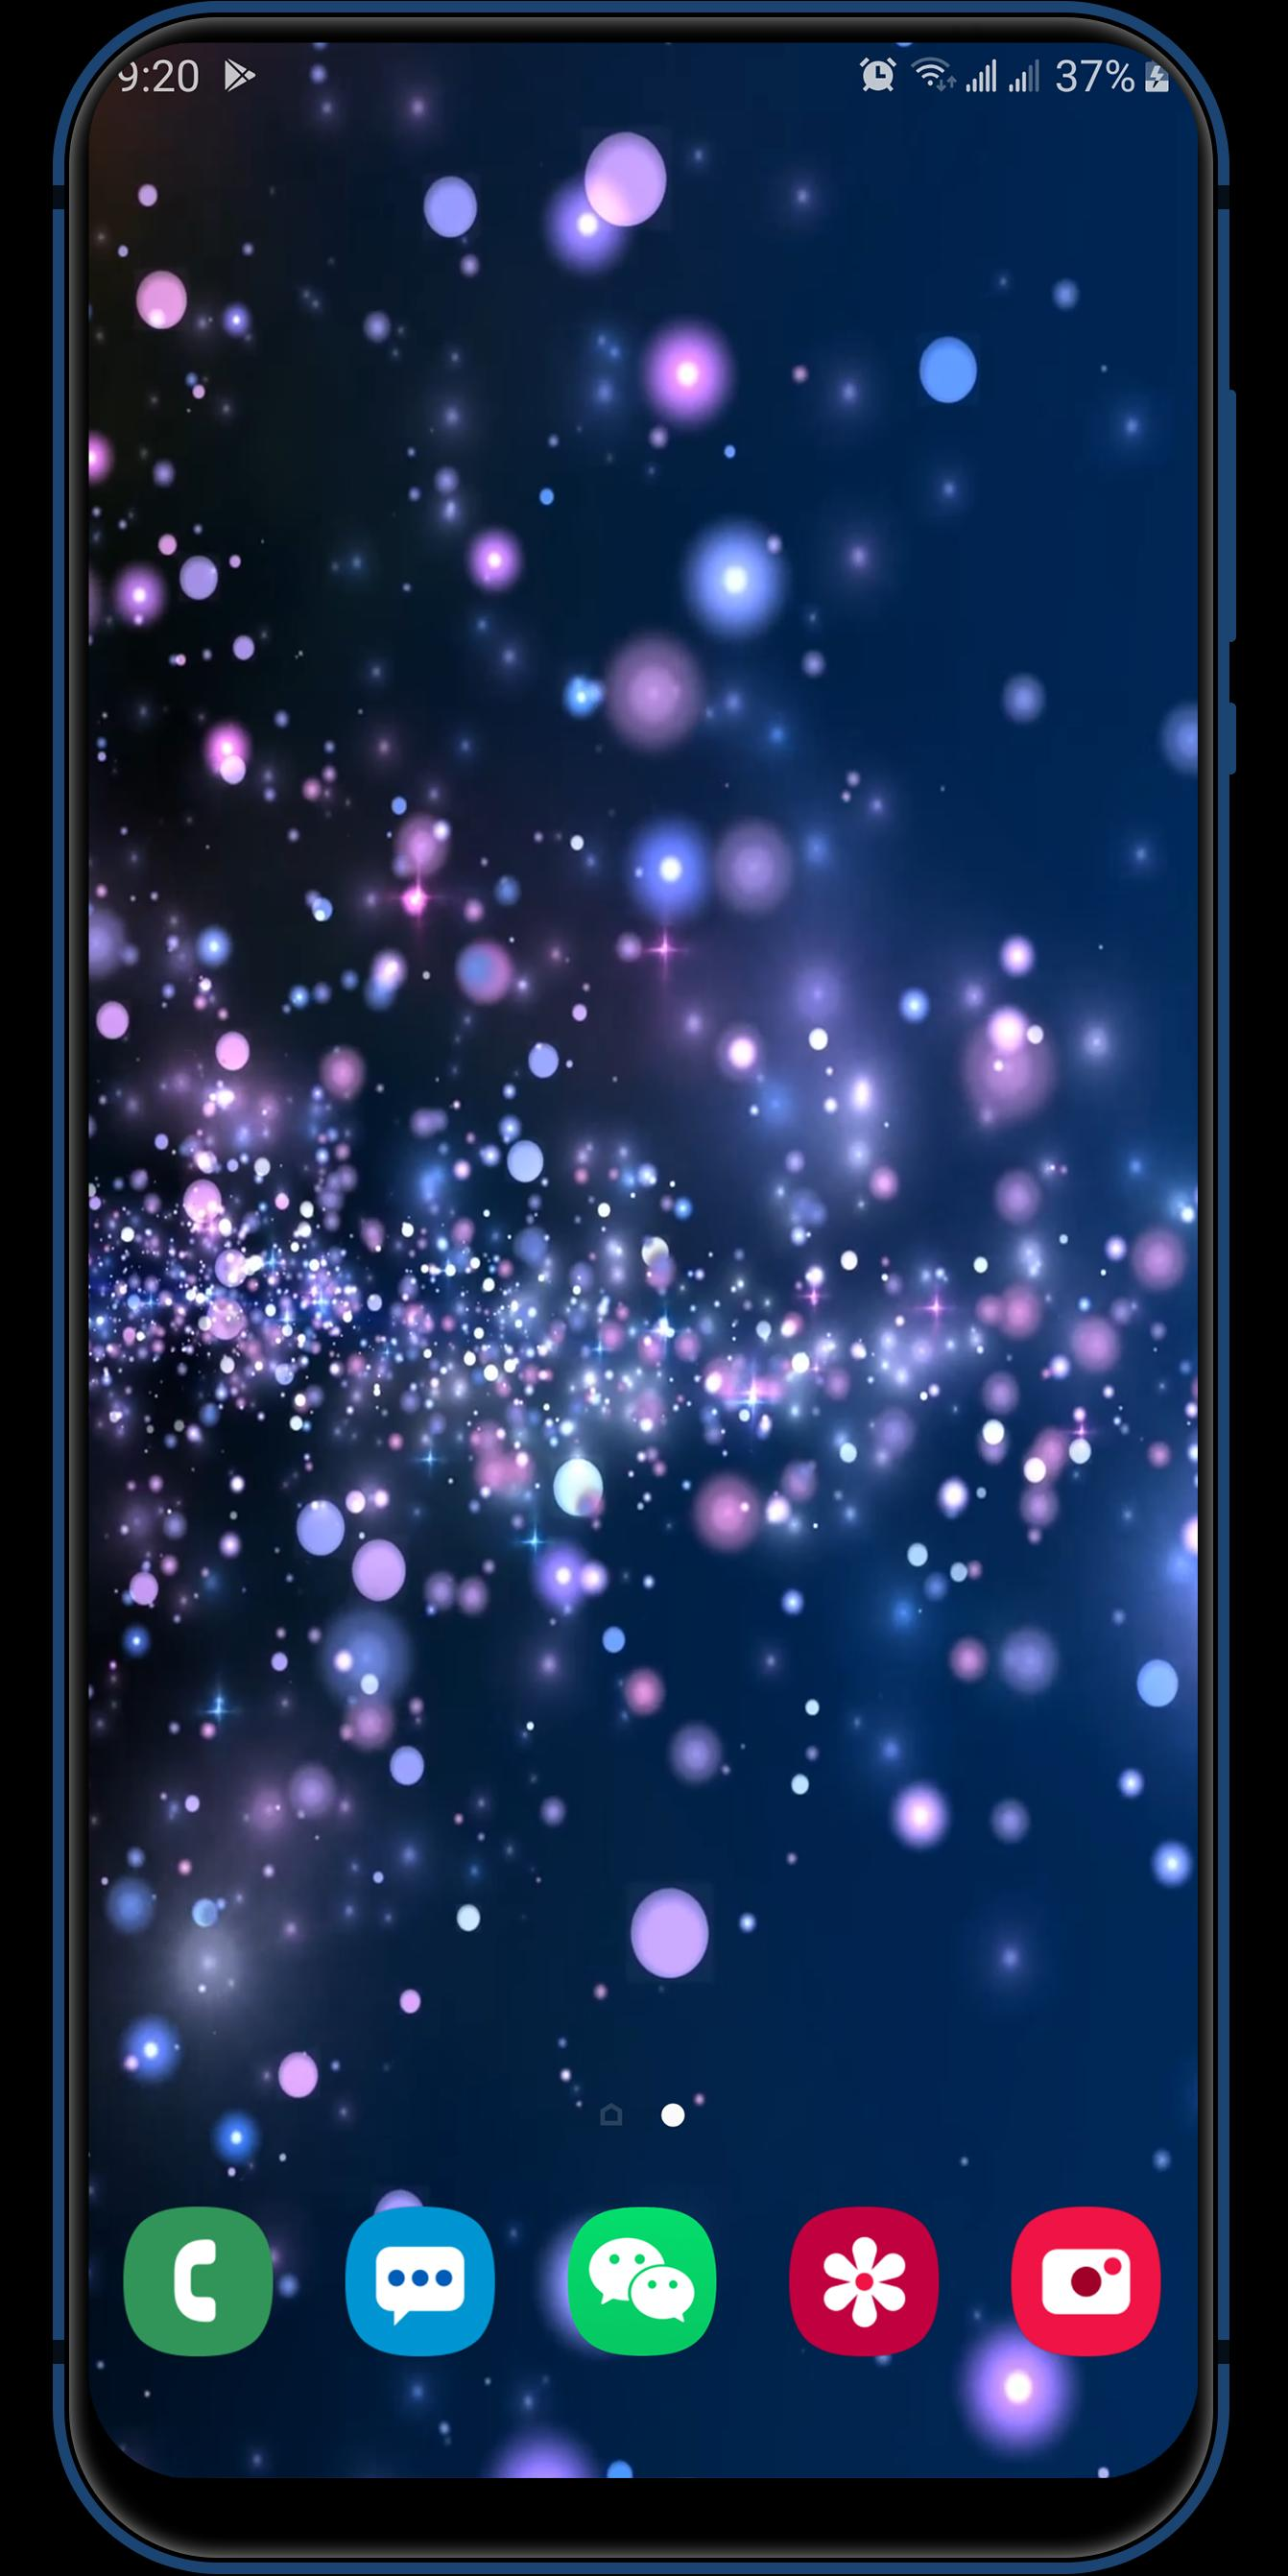 3d Shining Blue Lasers Particles Live Wallpaper For Android